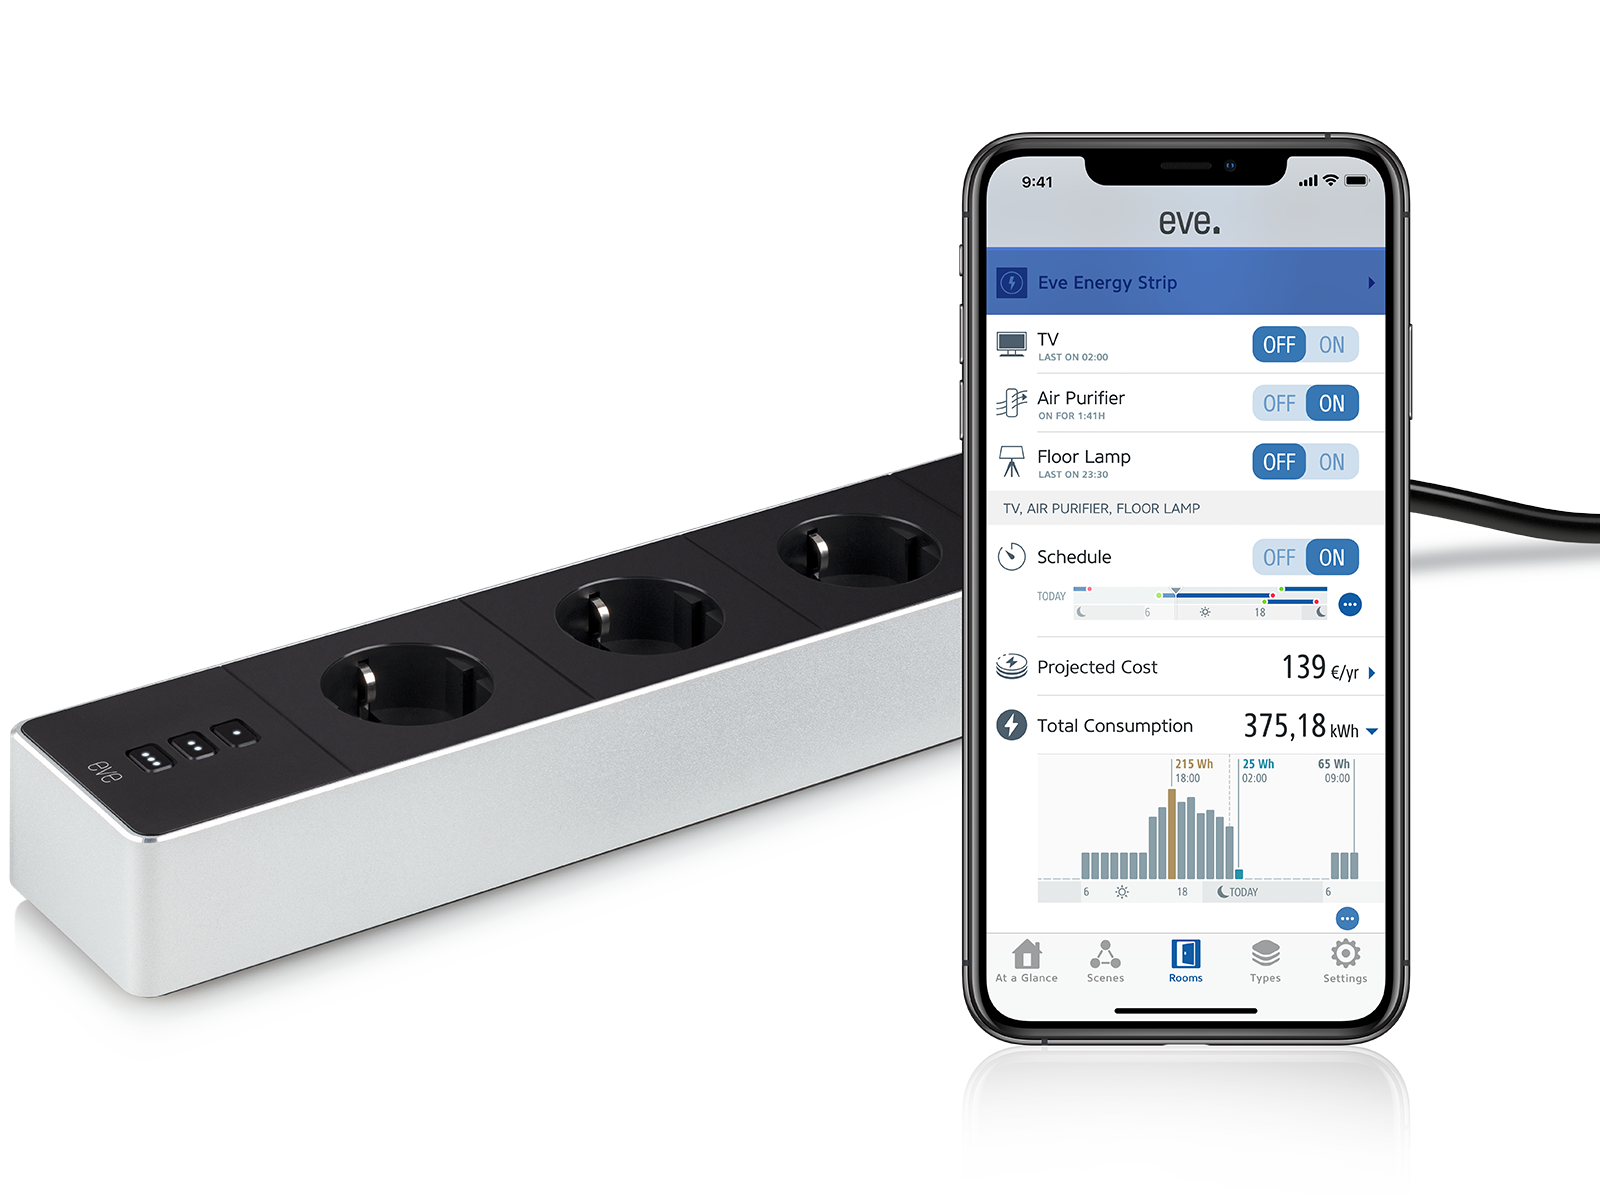 eve-power-strip-homekit-2